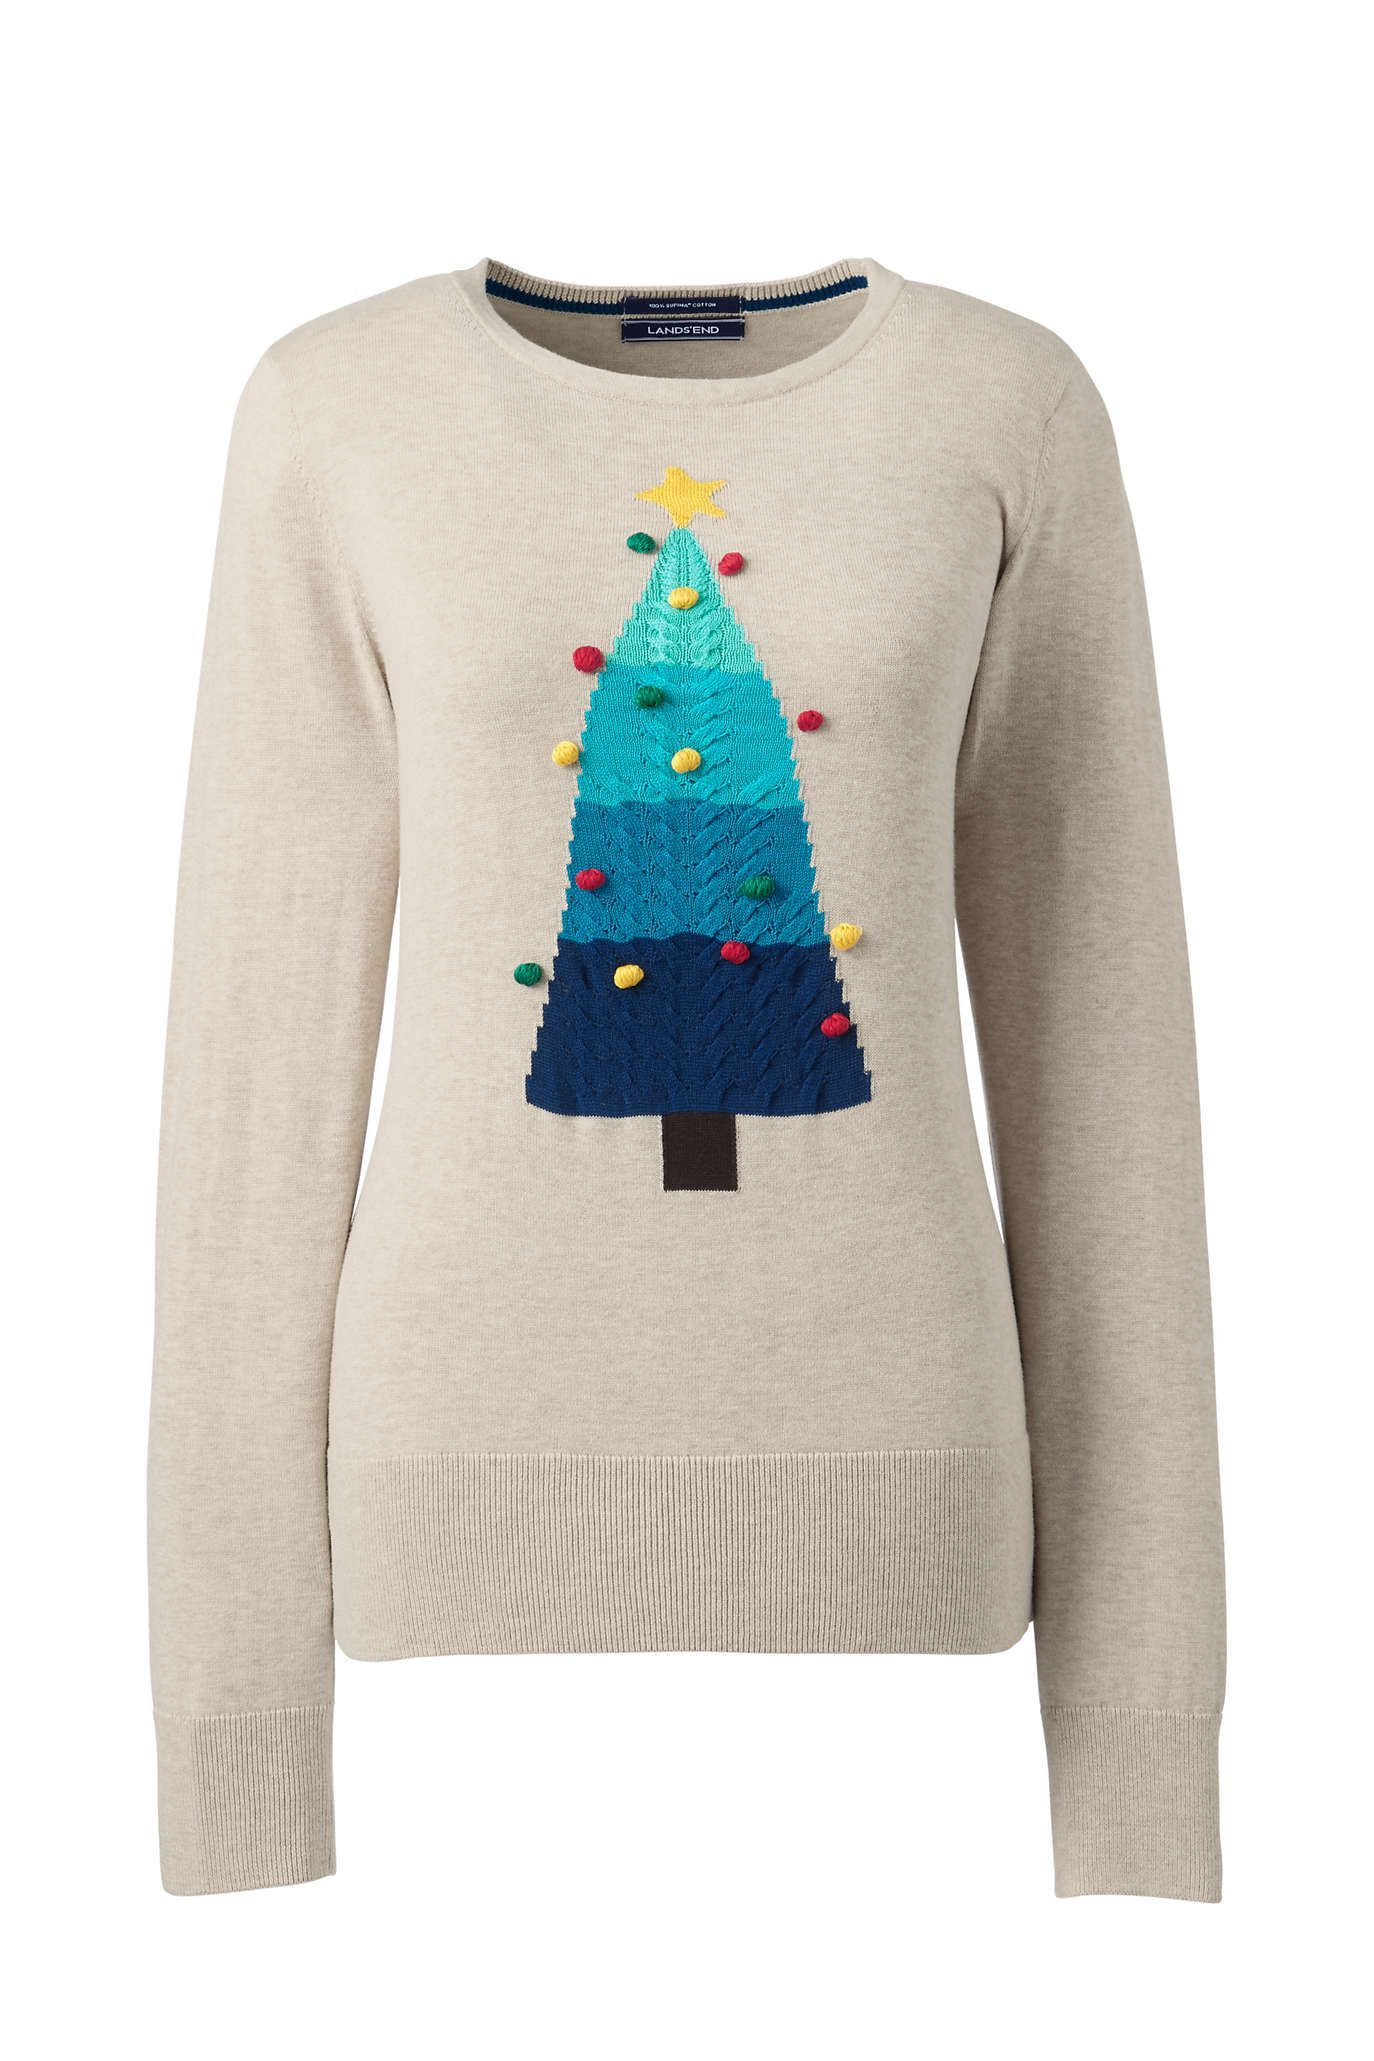 dbdfc31ac5f 30+ Prettiest Christmas Sweaters - Cute and Stylish Holiday Sweaters